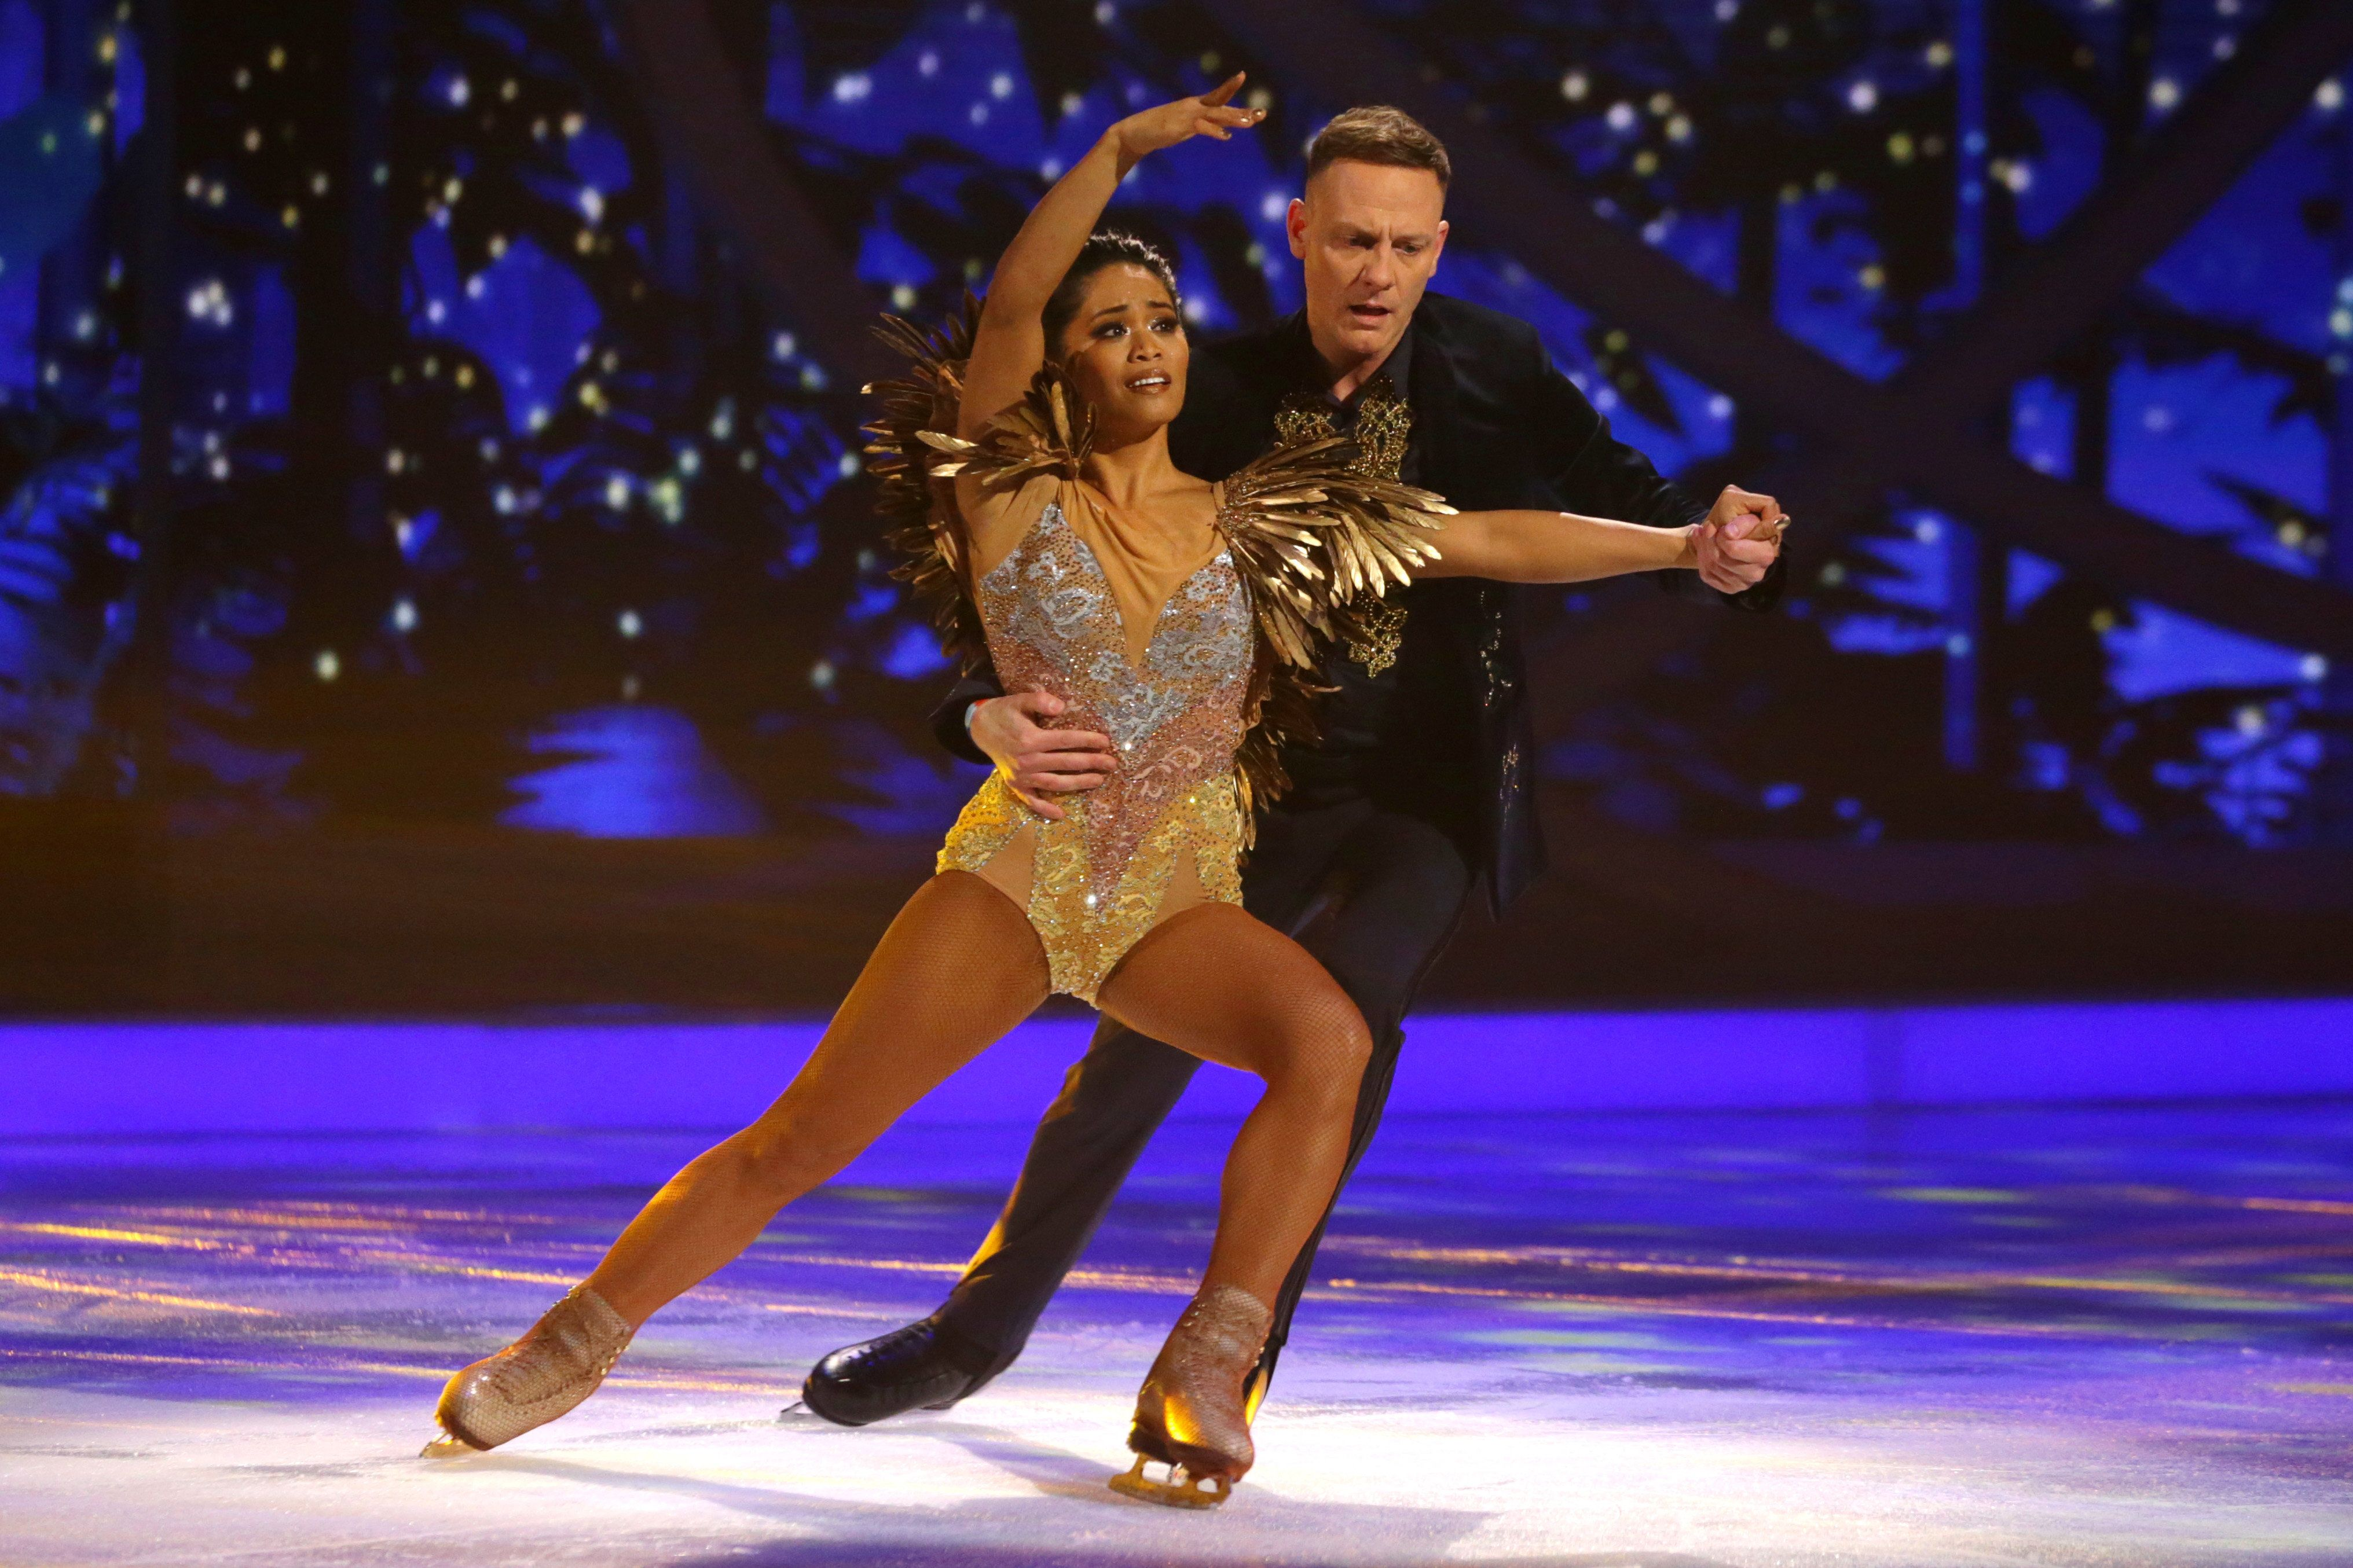 'Dancing On Ice' Star Antony Cotton Fractures Ribs After Falling During